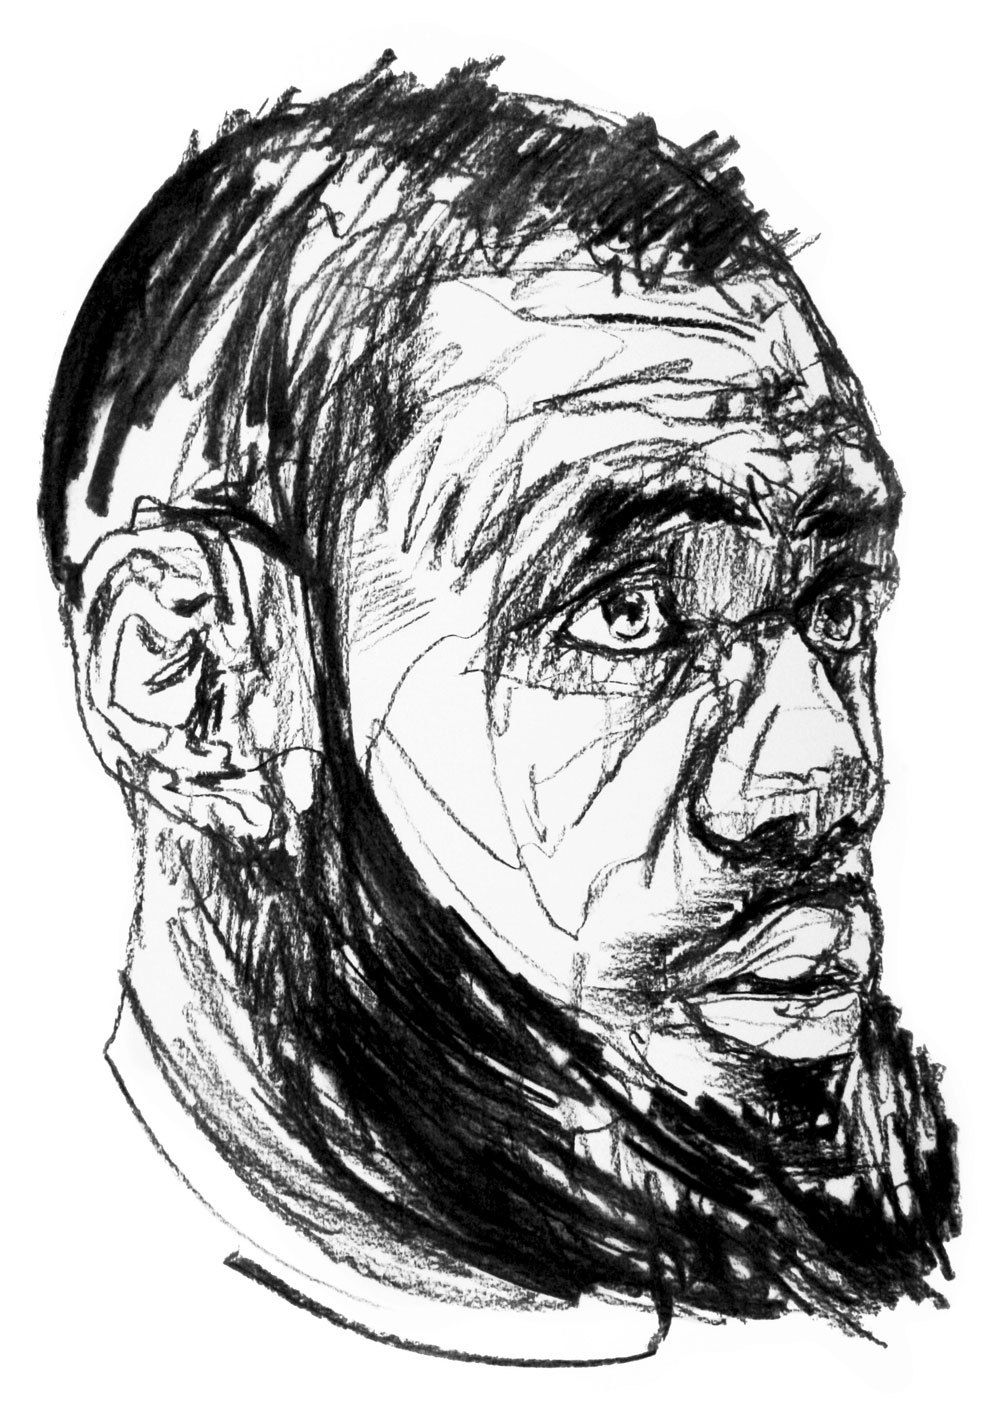 Portrait of lebron james by laïs takanashi drawing on paper 50 x 60 cm 2018